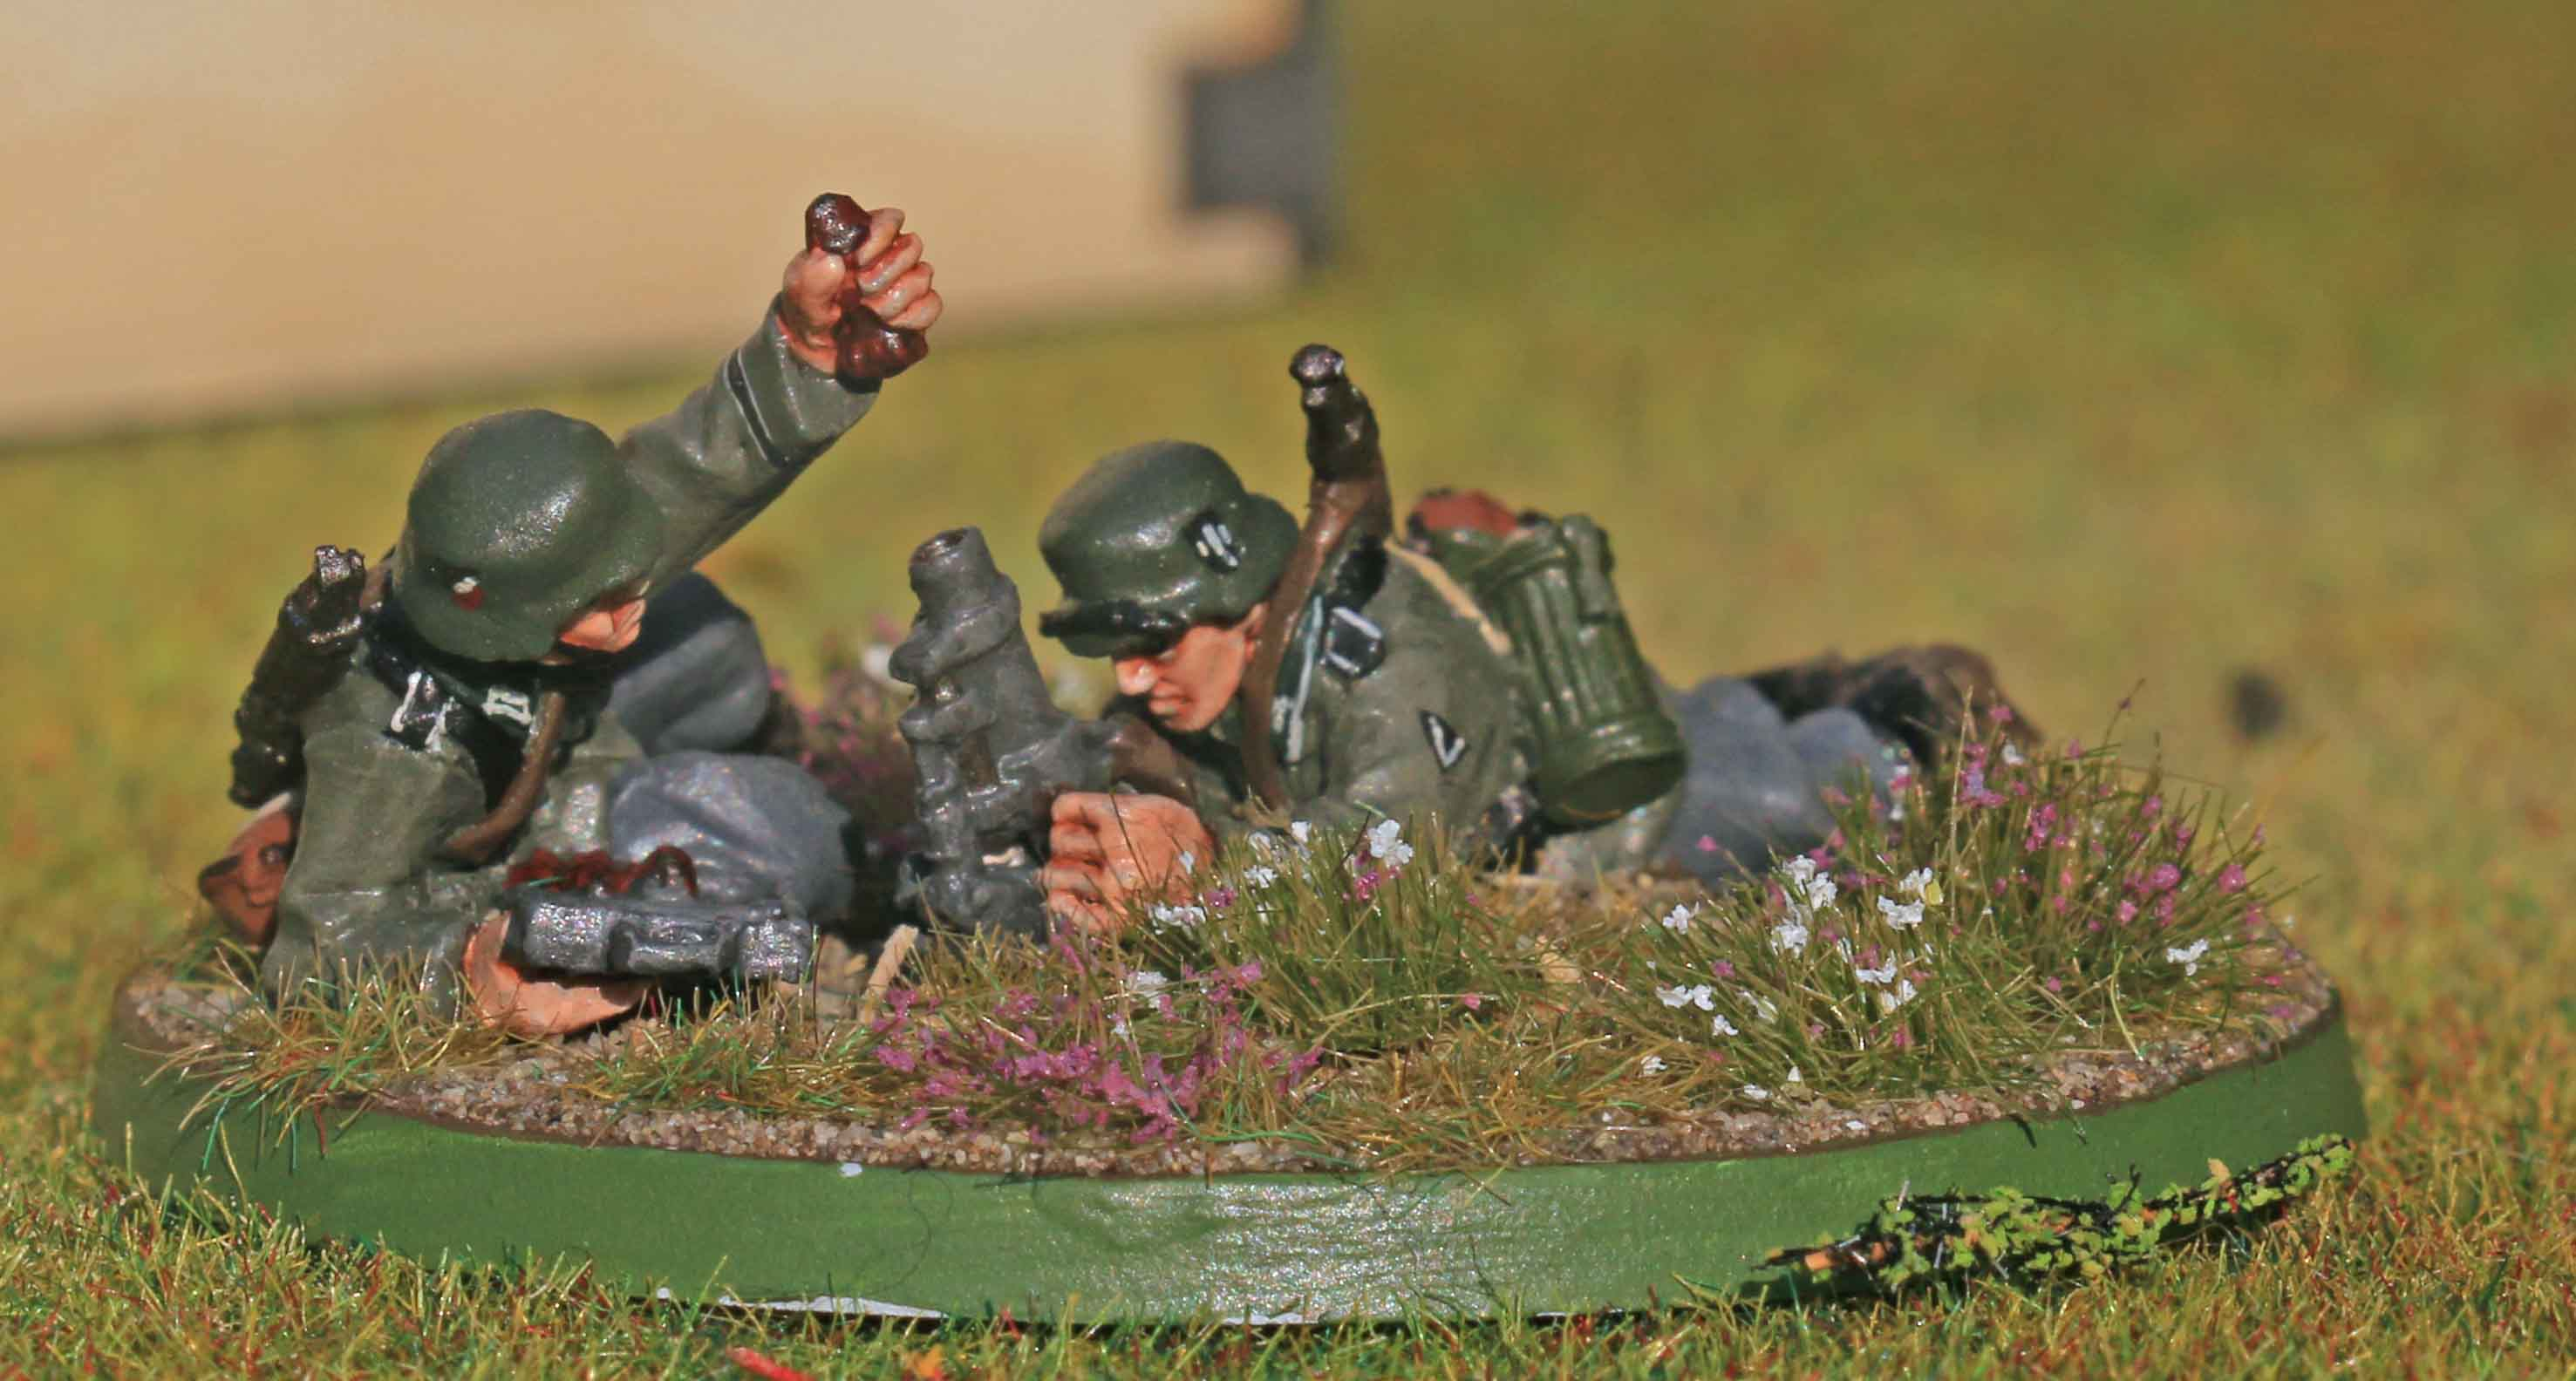 Blitzkrieg to Barbarossa light mortar team